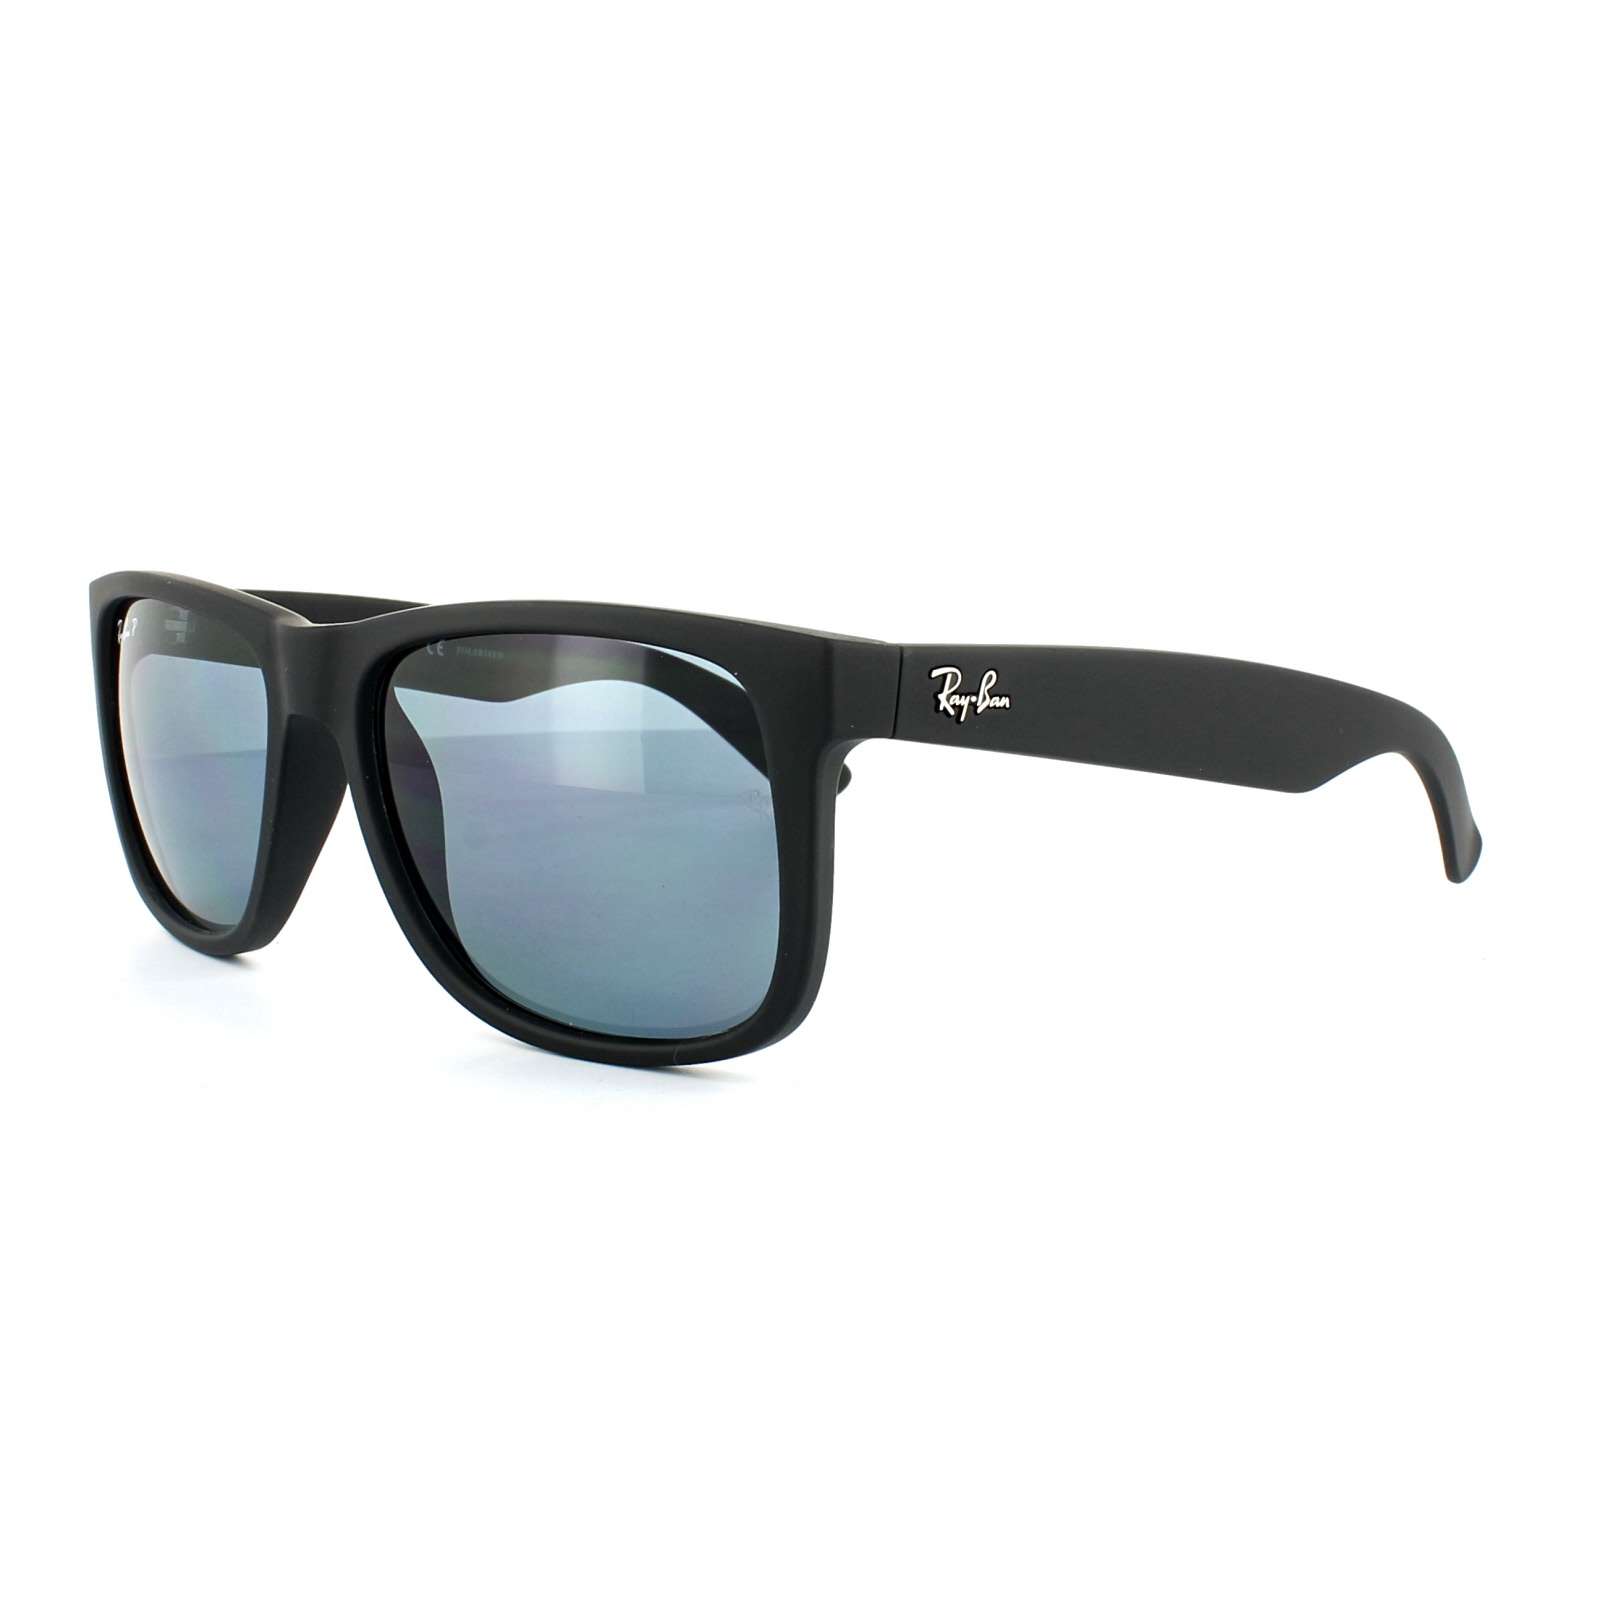 6bd1b7c649bd6 Sentinel Ray-Ban Sunglasses Justin 4165 622 2V Black Blue Polarized 55mm